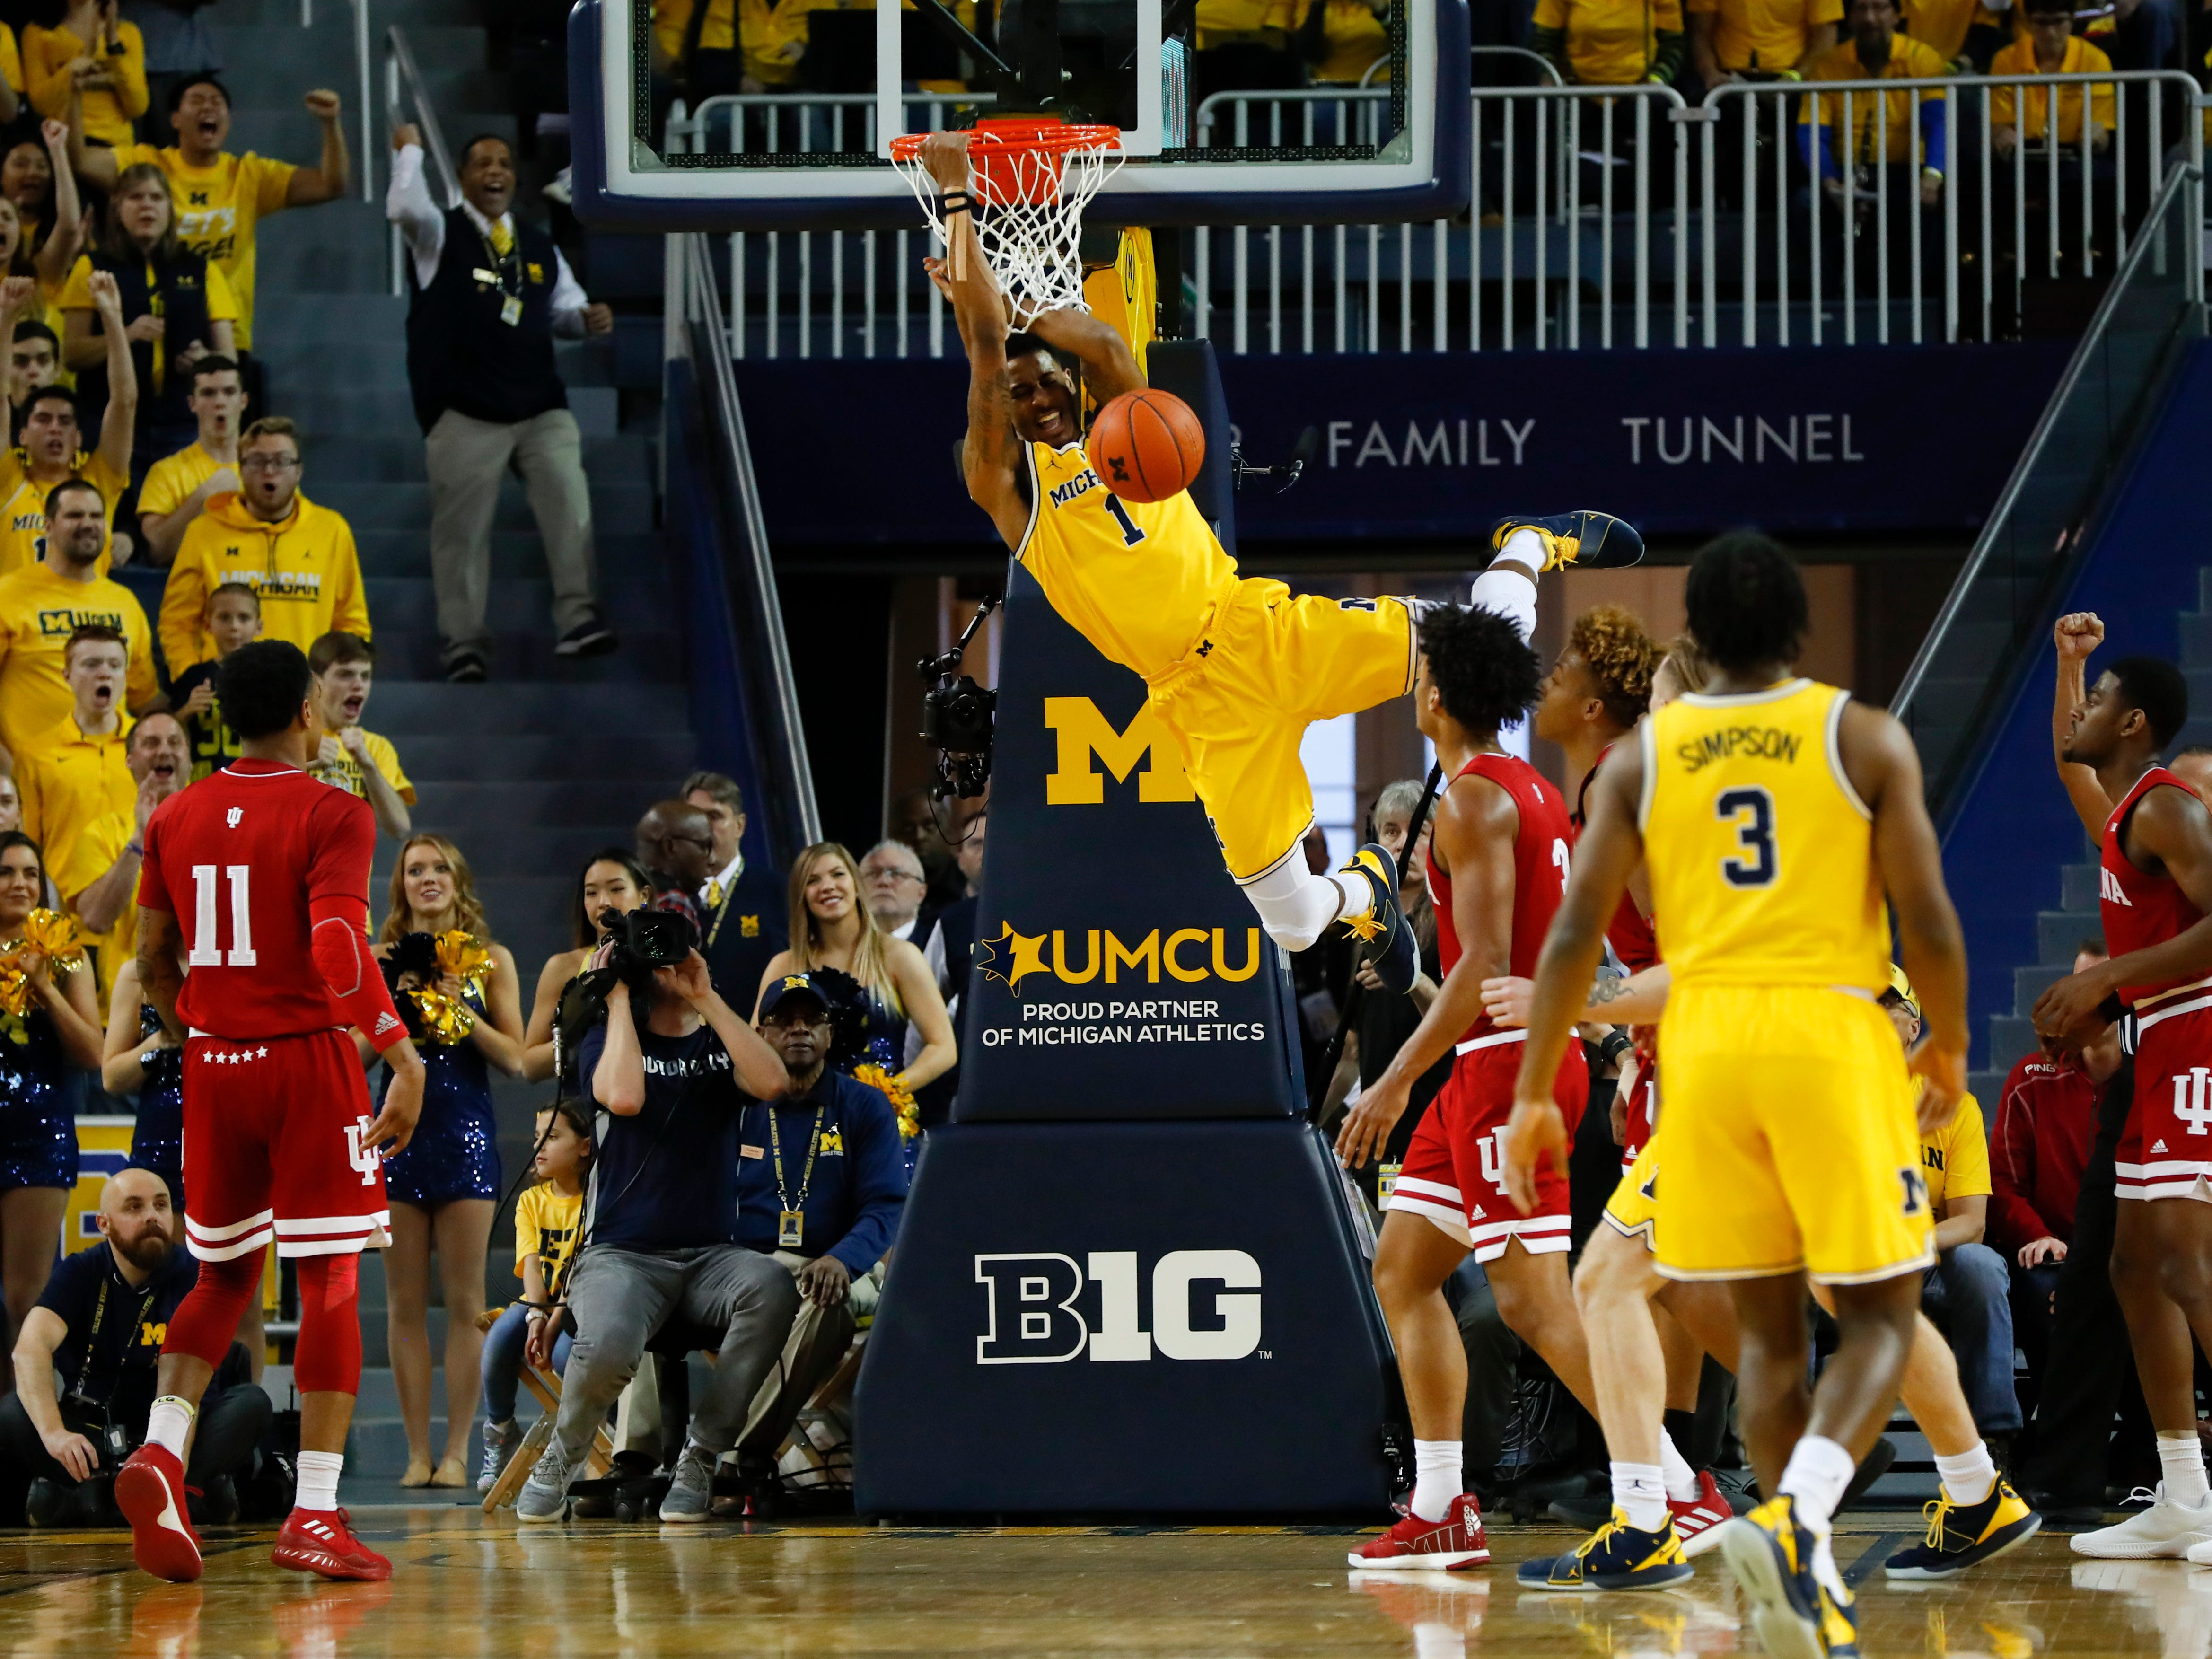 Michigan guard Charles Matthews (1) dunks in the first half of an NCAA college basketball game against Indiana in Ann Arbor, Mich., Sunday, Jan. 6, 2019.